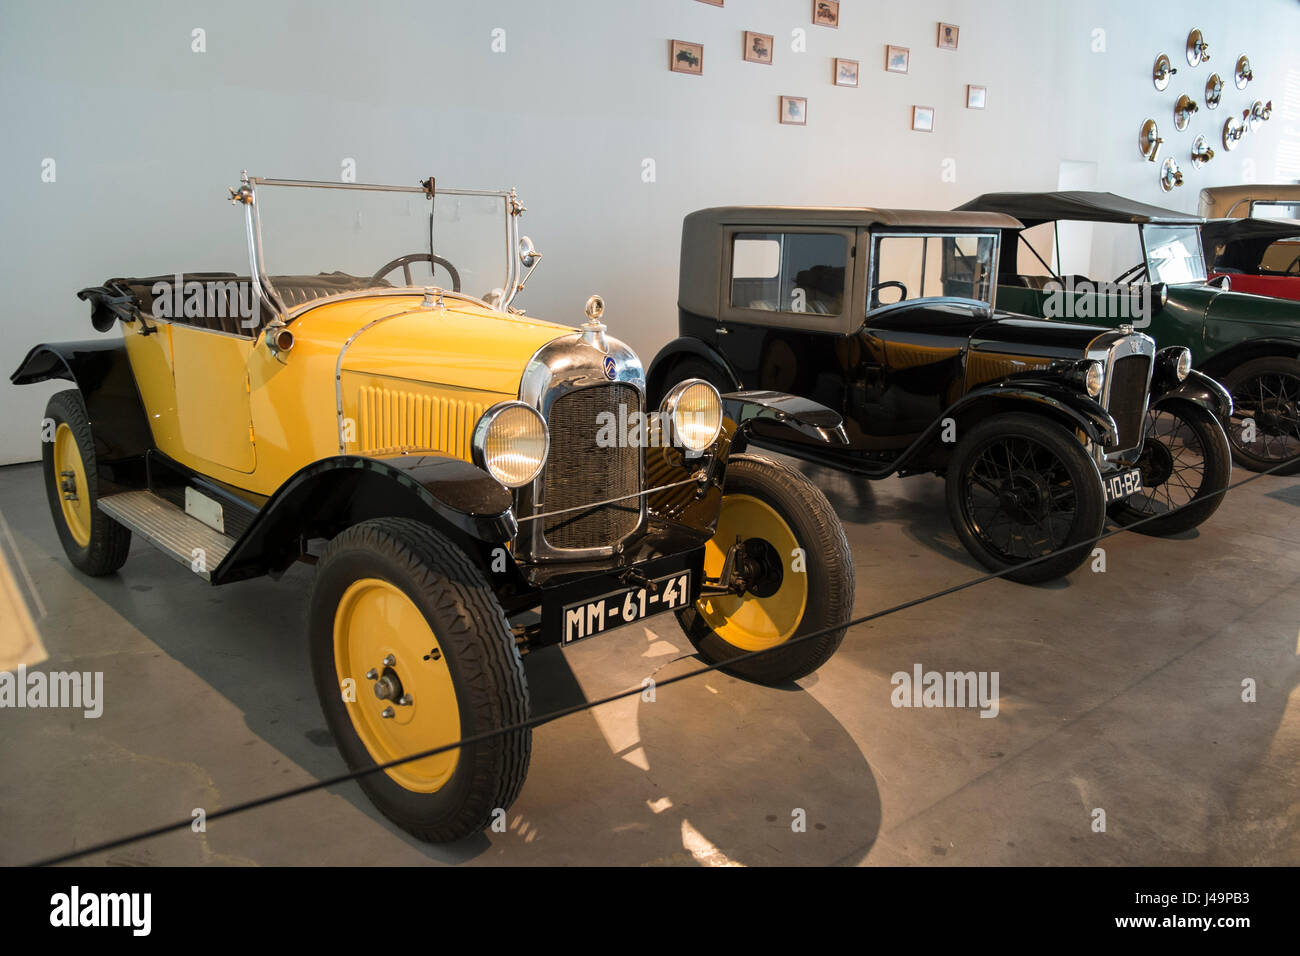 1922 Citroën Type C. Automobile museum of Málaga, Andalusia, Spain Stock Photo